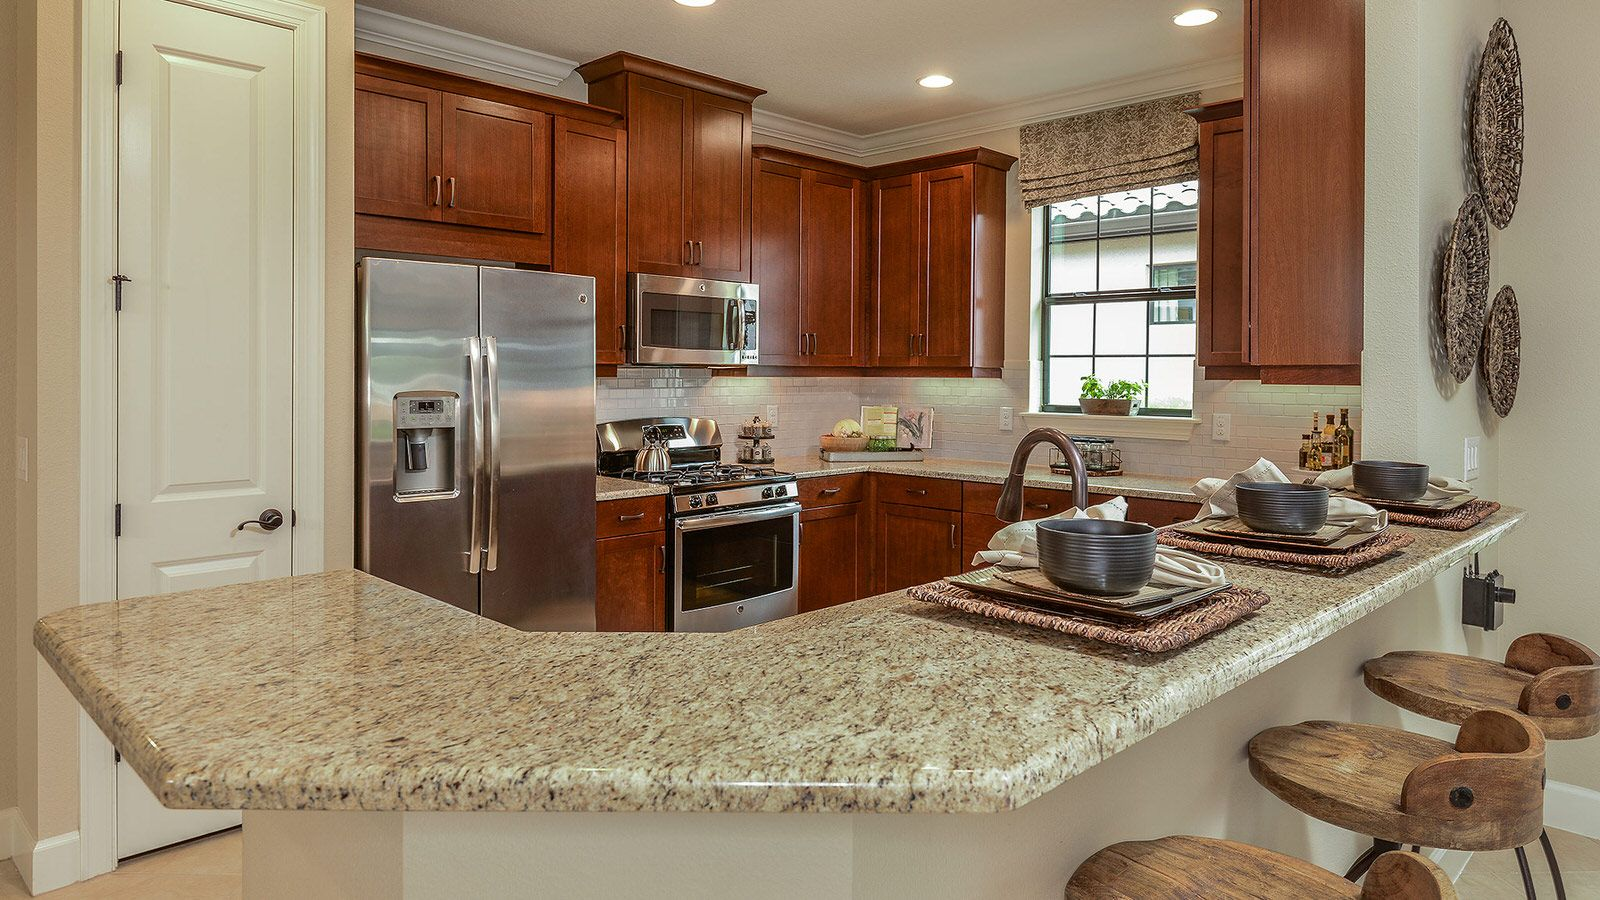 Kitchen featured in the Arezzo Plan By Taylor Morrison in Sarasota-Bradenton, FL